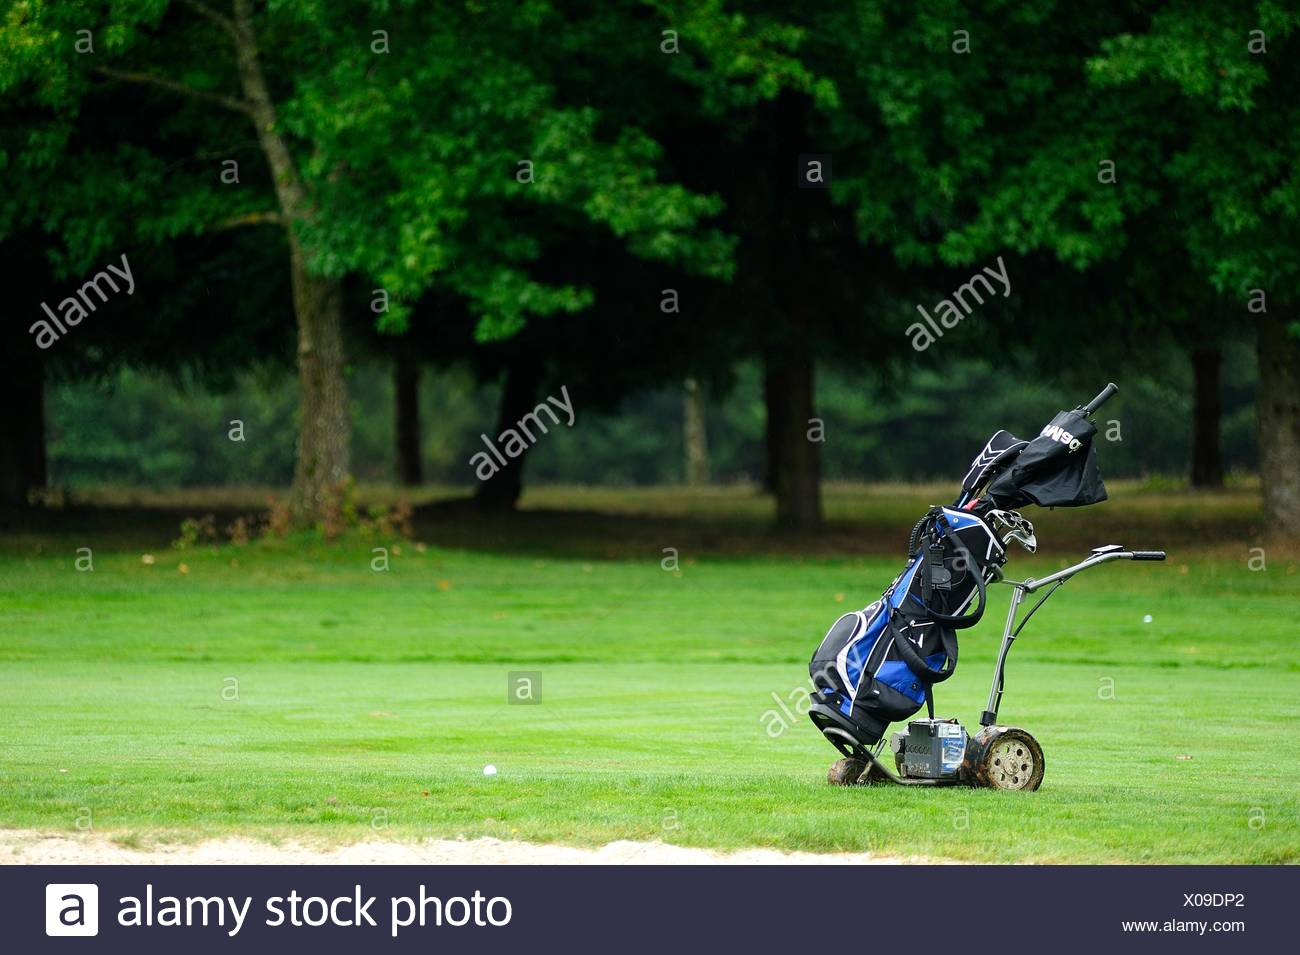 Golf cart without people on the golf course - Stock Image